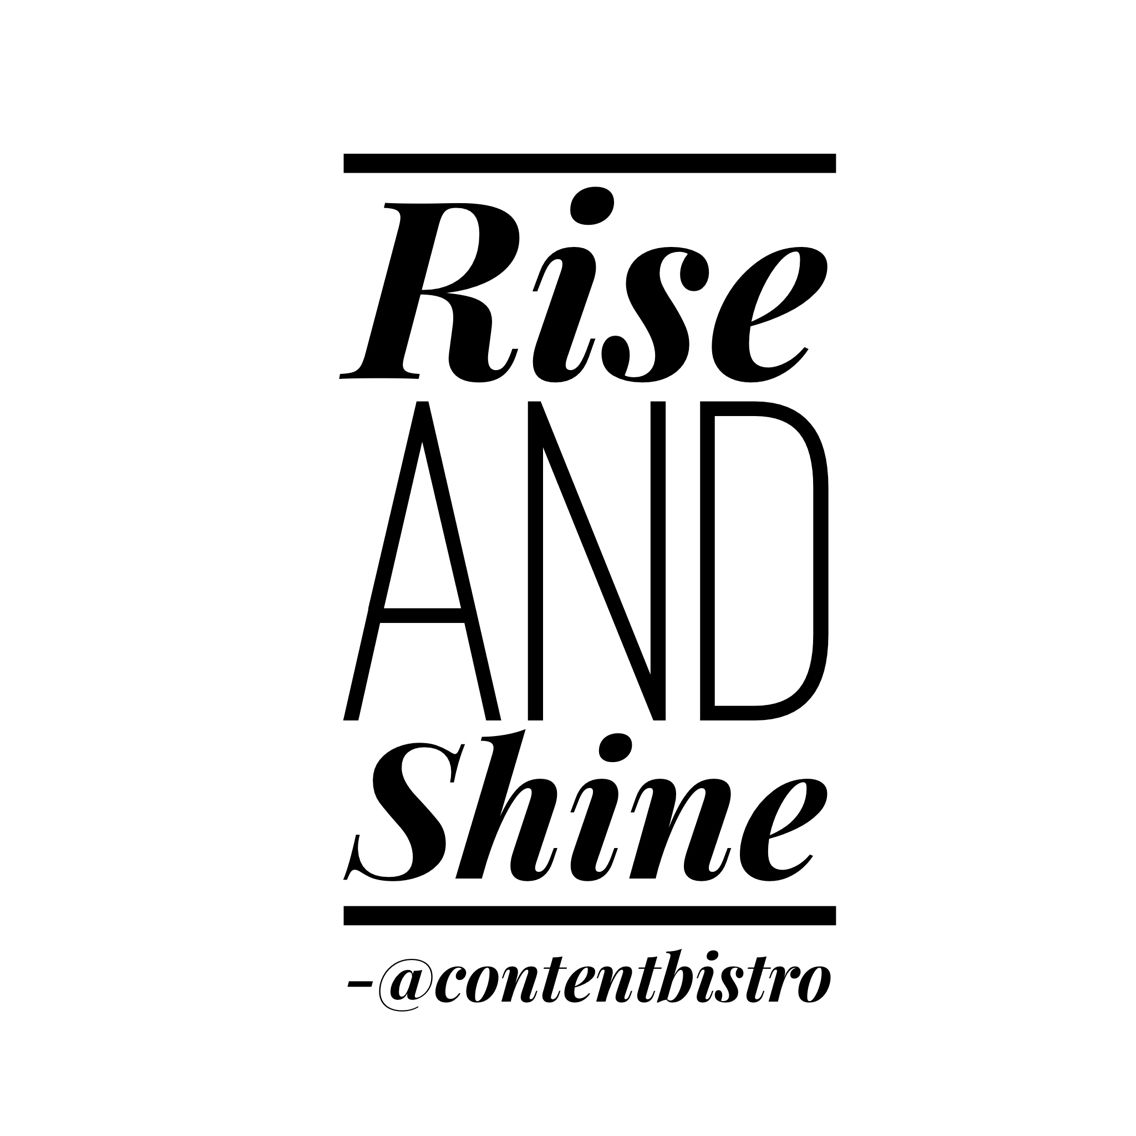 Rise And Shine Quotes It's Your Time To Rise Up And Shine Quotes Entrepreneurs